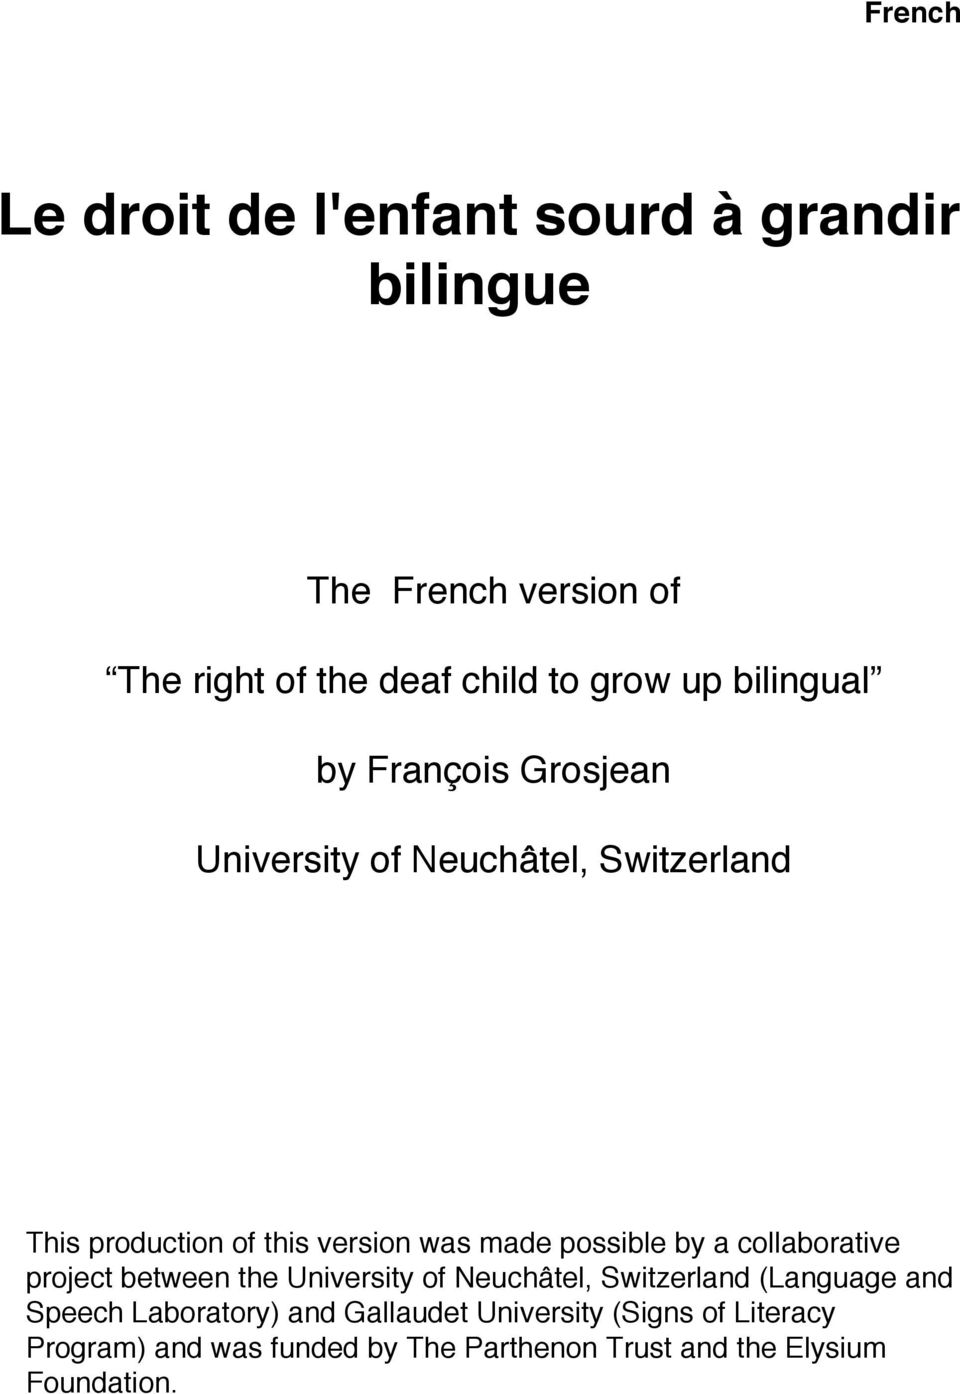 possible by a collaborative project between the University of Neuchâtel, Switzerland (Language and Speech